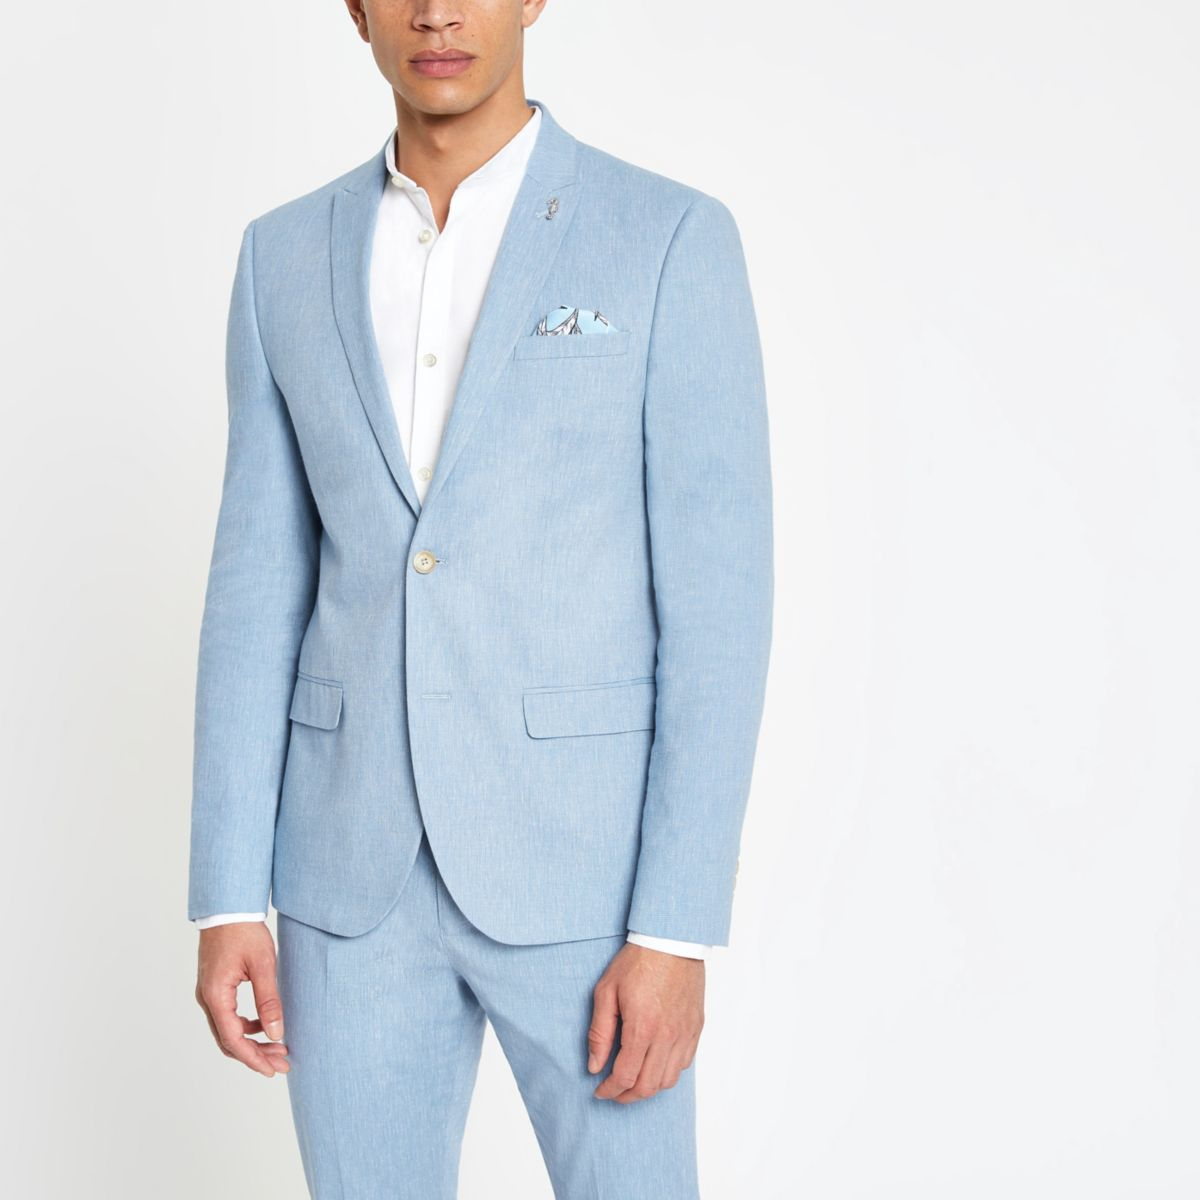 3 Piece Suit | Three Piece Suit | Men 3 Piece Suit | River Island